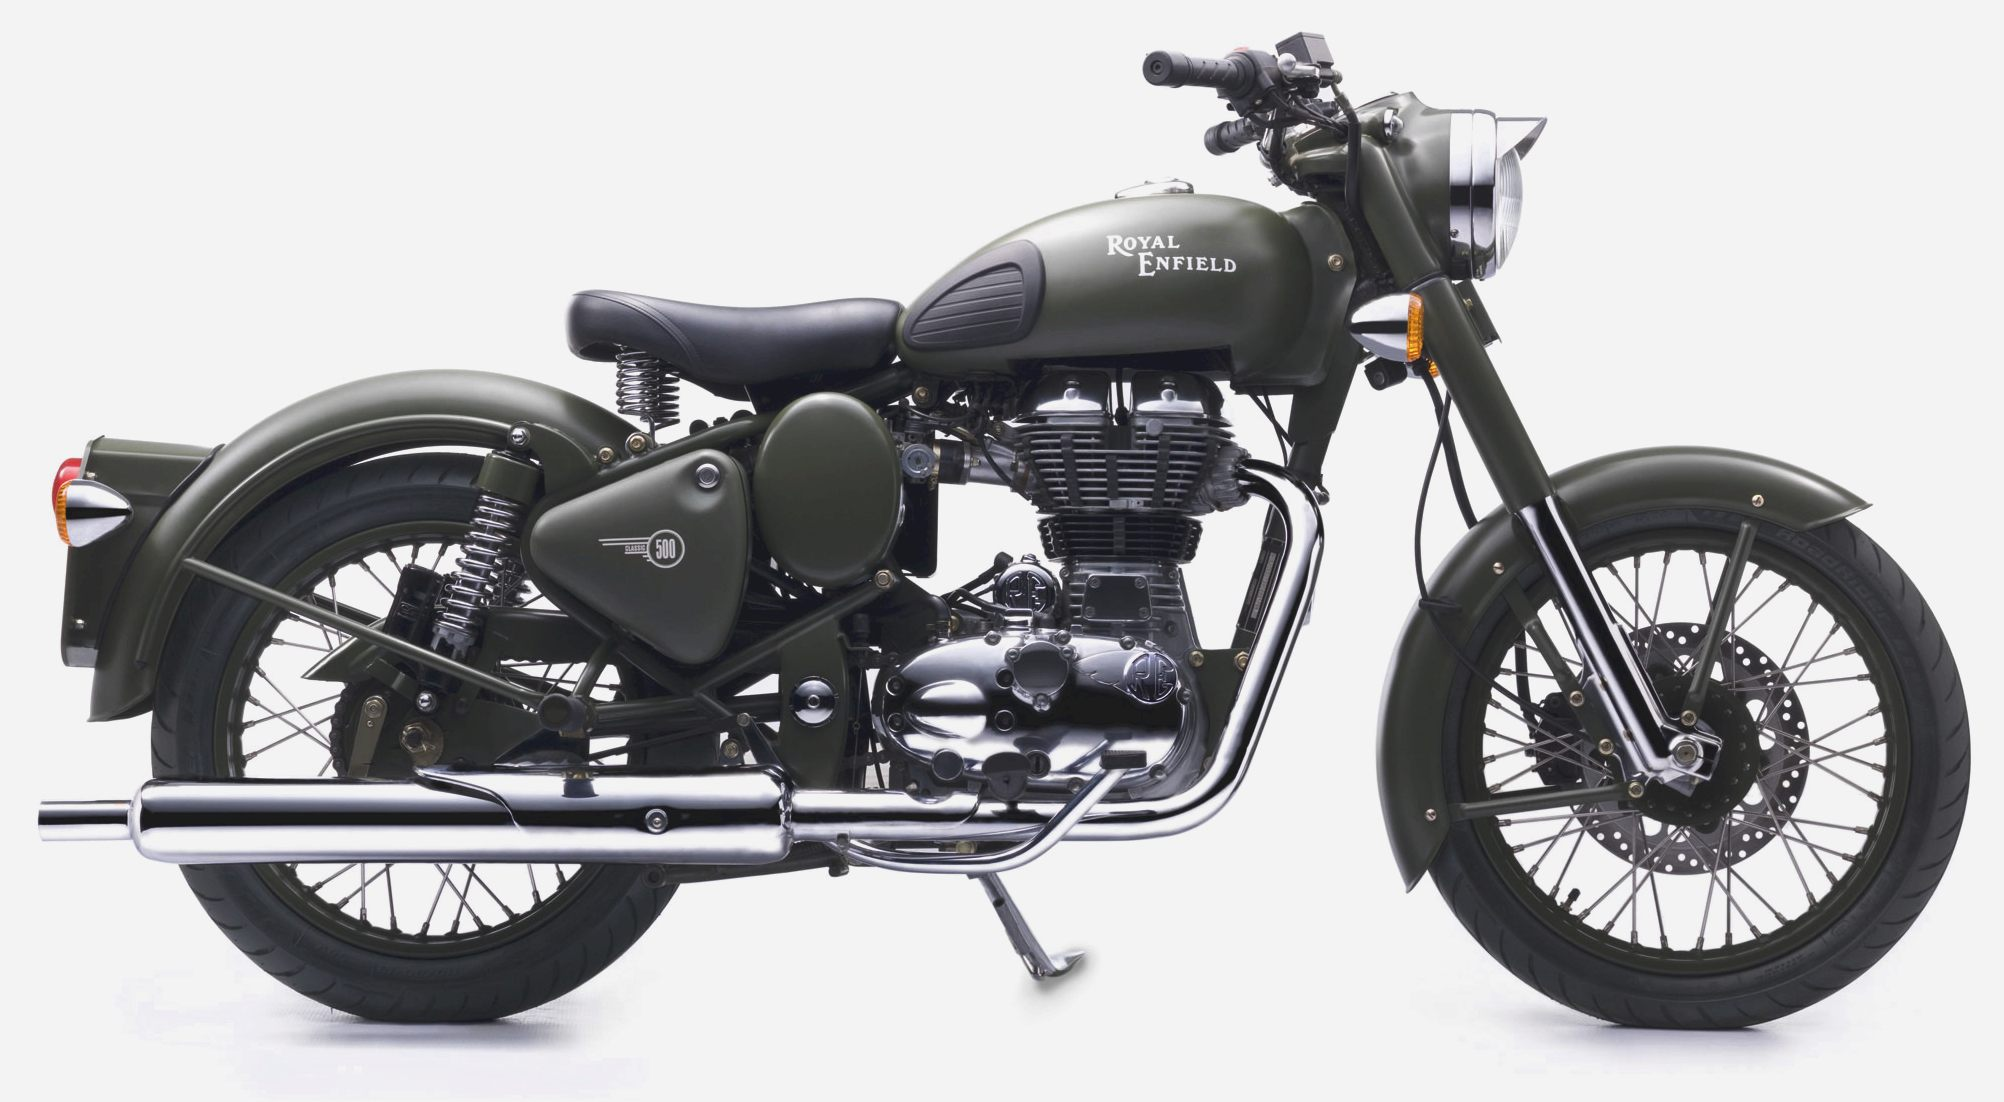 Royal Enfield Bullet 500 Army images #122717